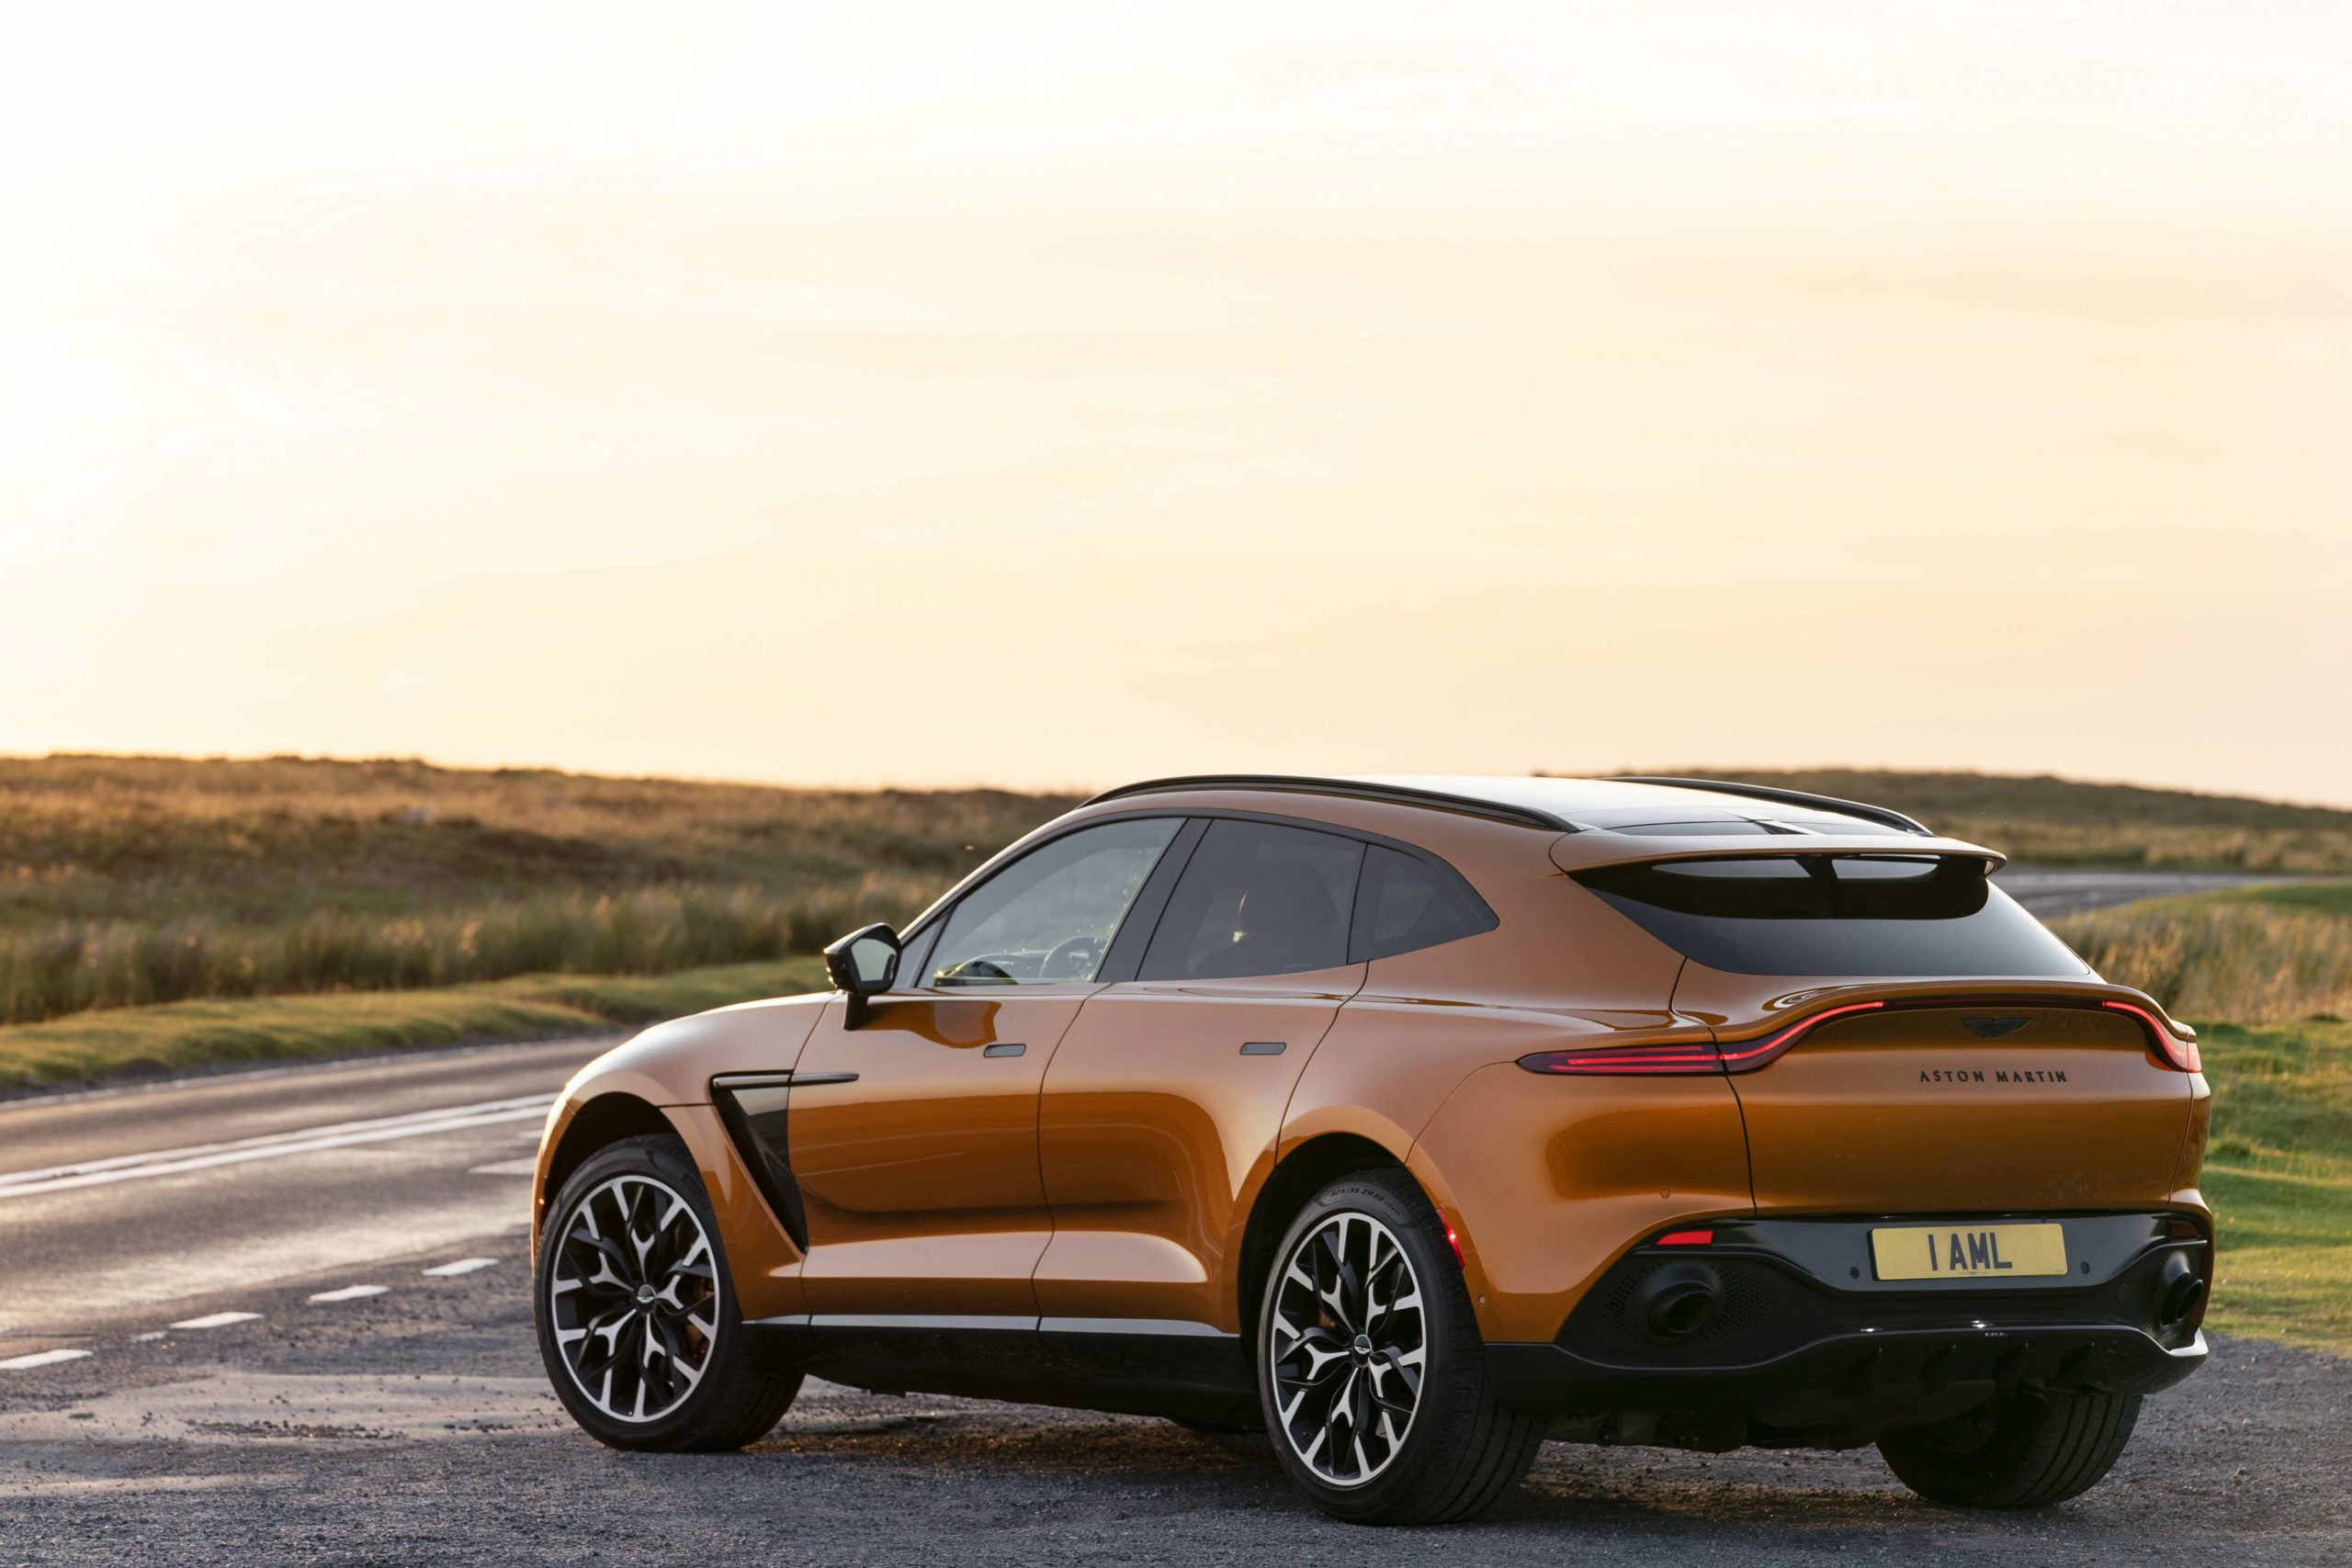 X marks the sweet spot: 2021 Aston Martin DBX review